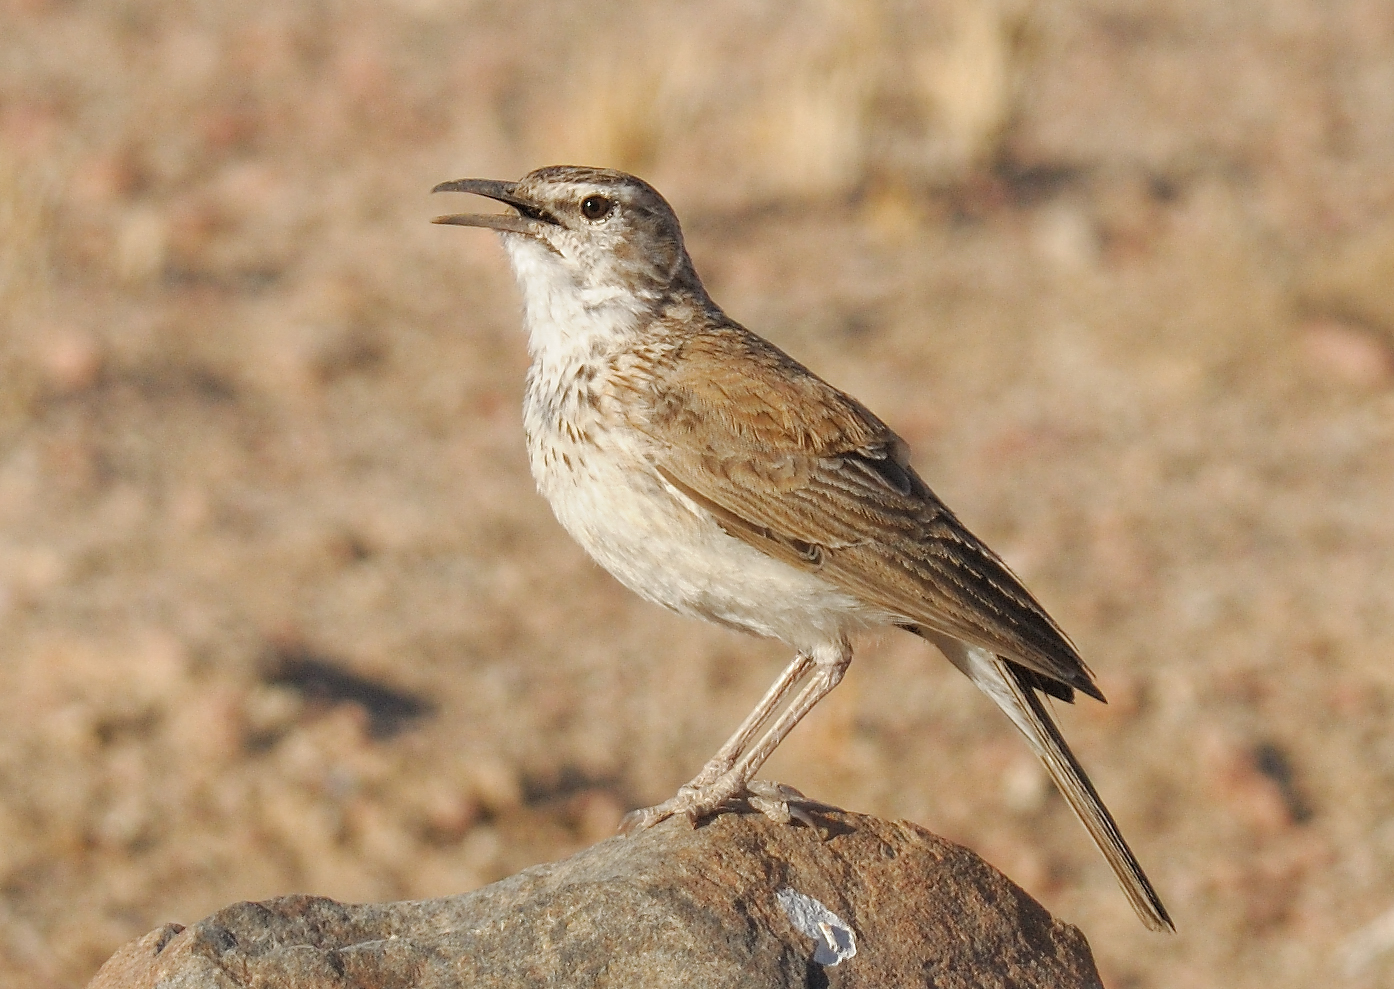 Benguela Long-billed Lark